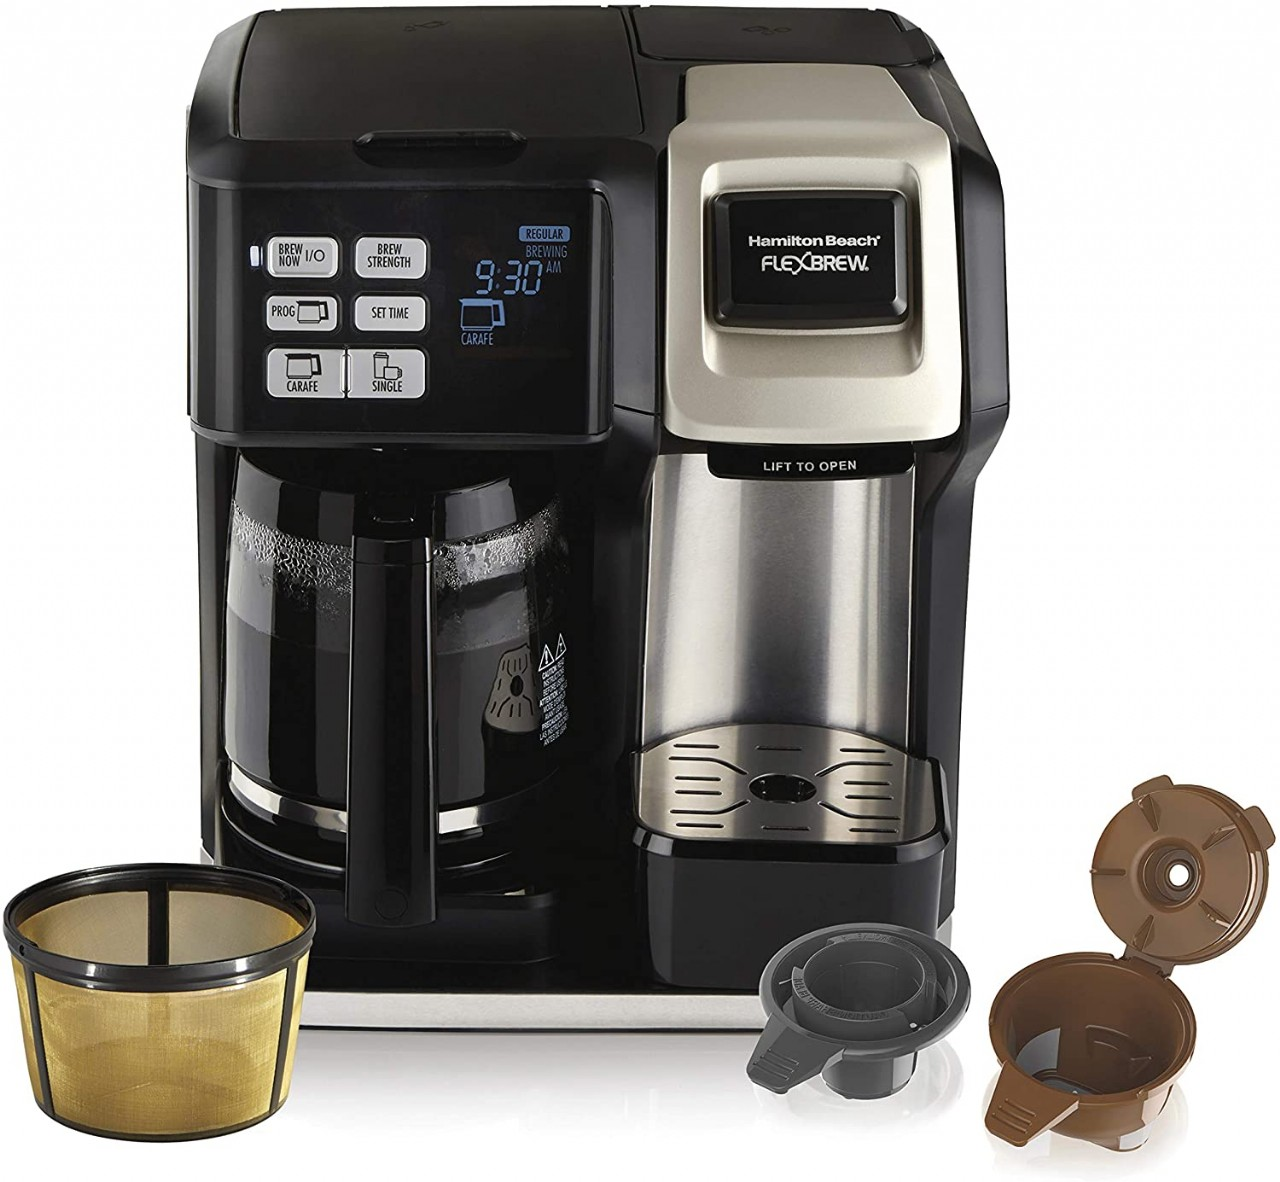 Hamilton Beach FlexBrew Coffee Maker, Single Serve & Full Pot, Compatible with K-Cup Pods or Grounds